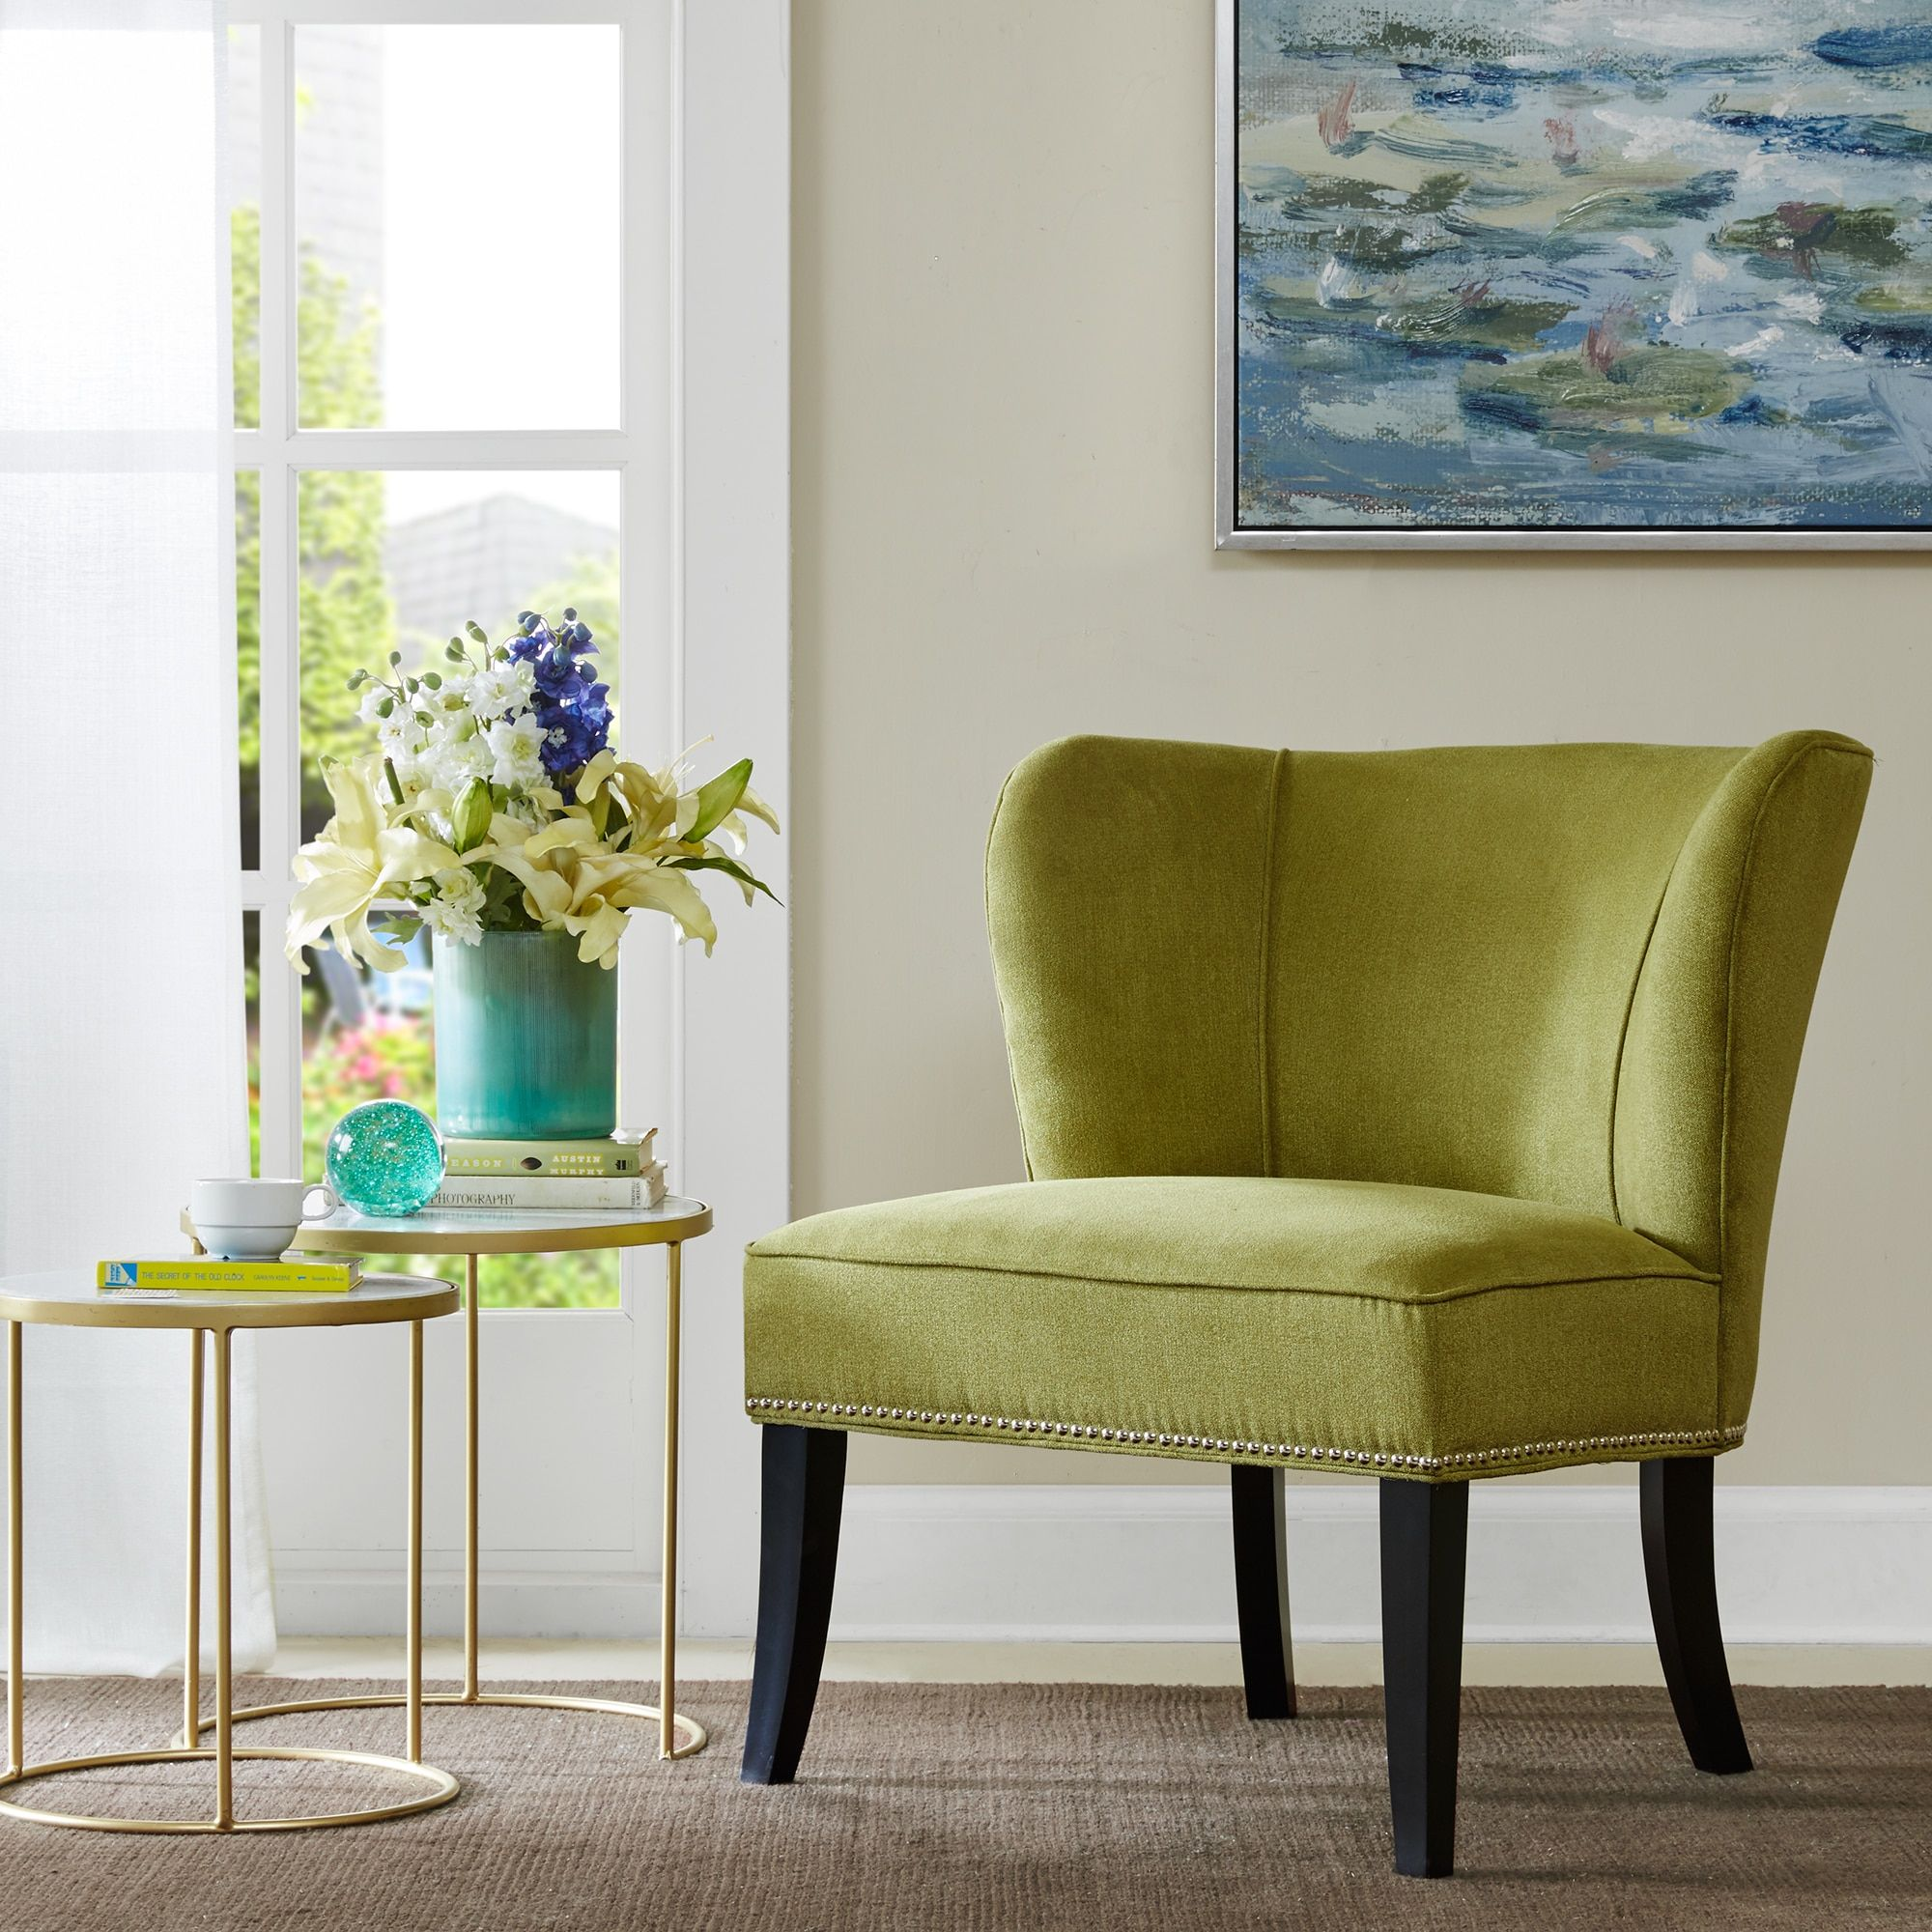 Beau Madison Park Sheldon Green Armless Accent Chair (30.25W X 28.75D X 33.5H